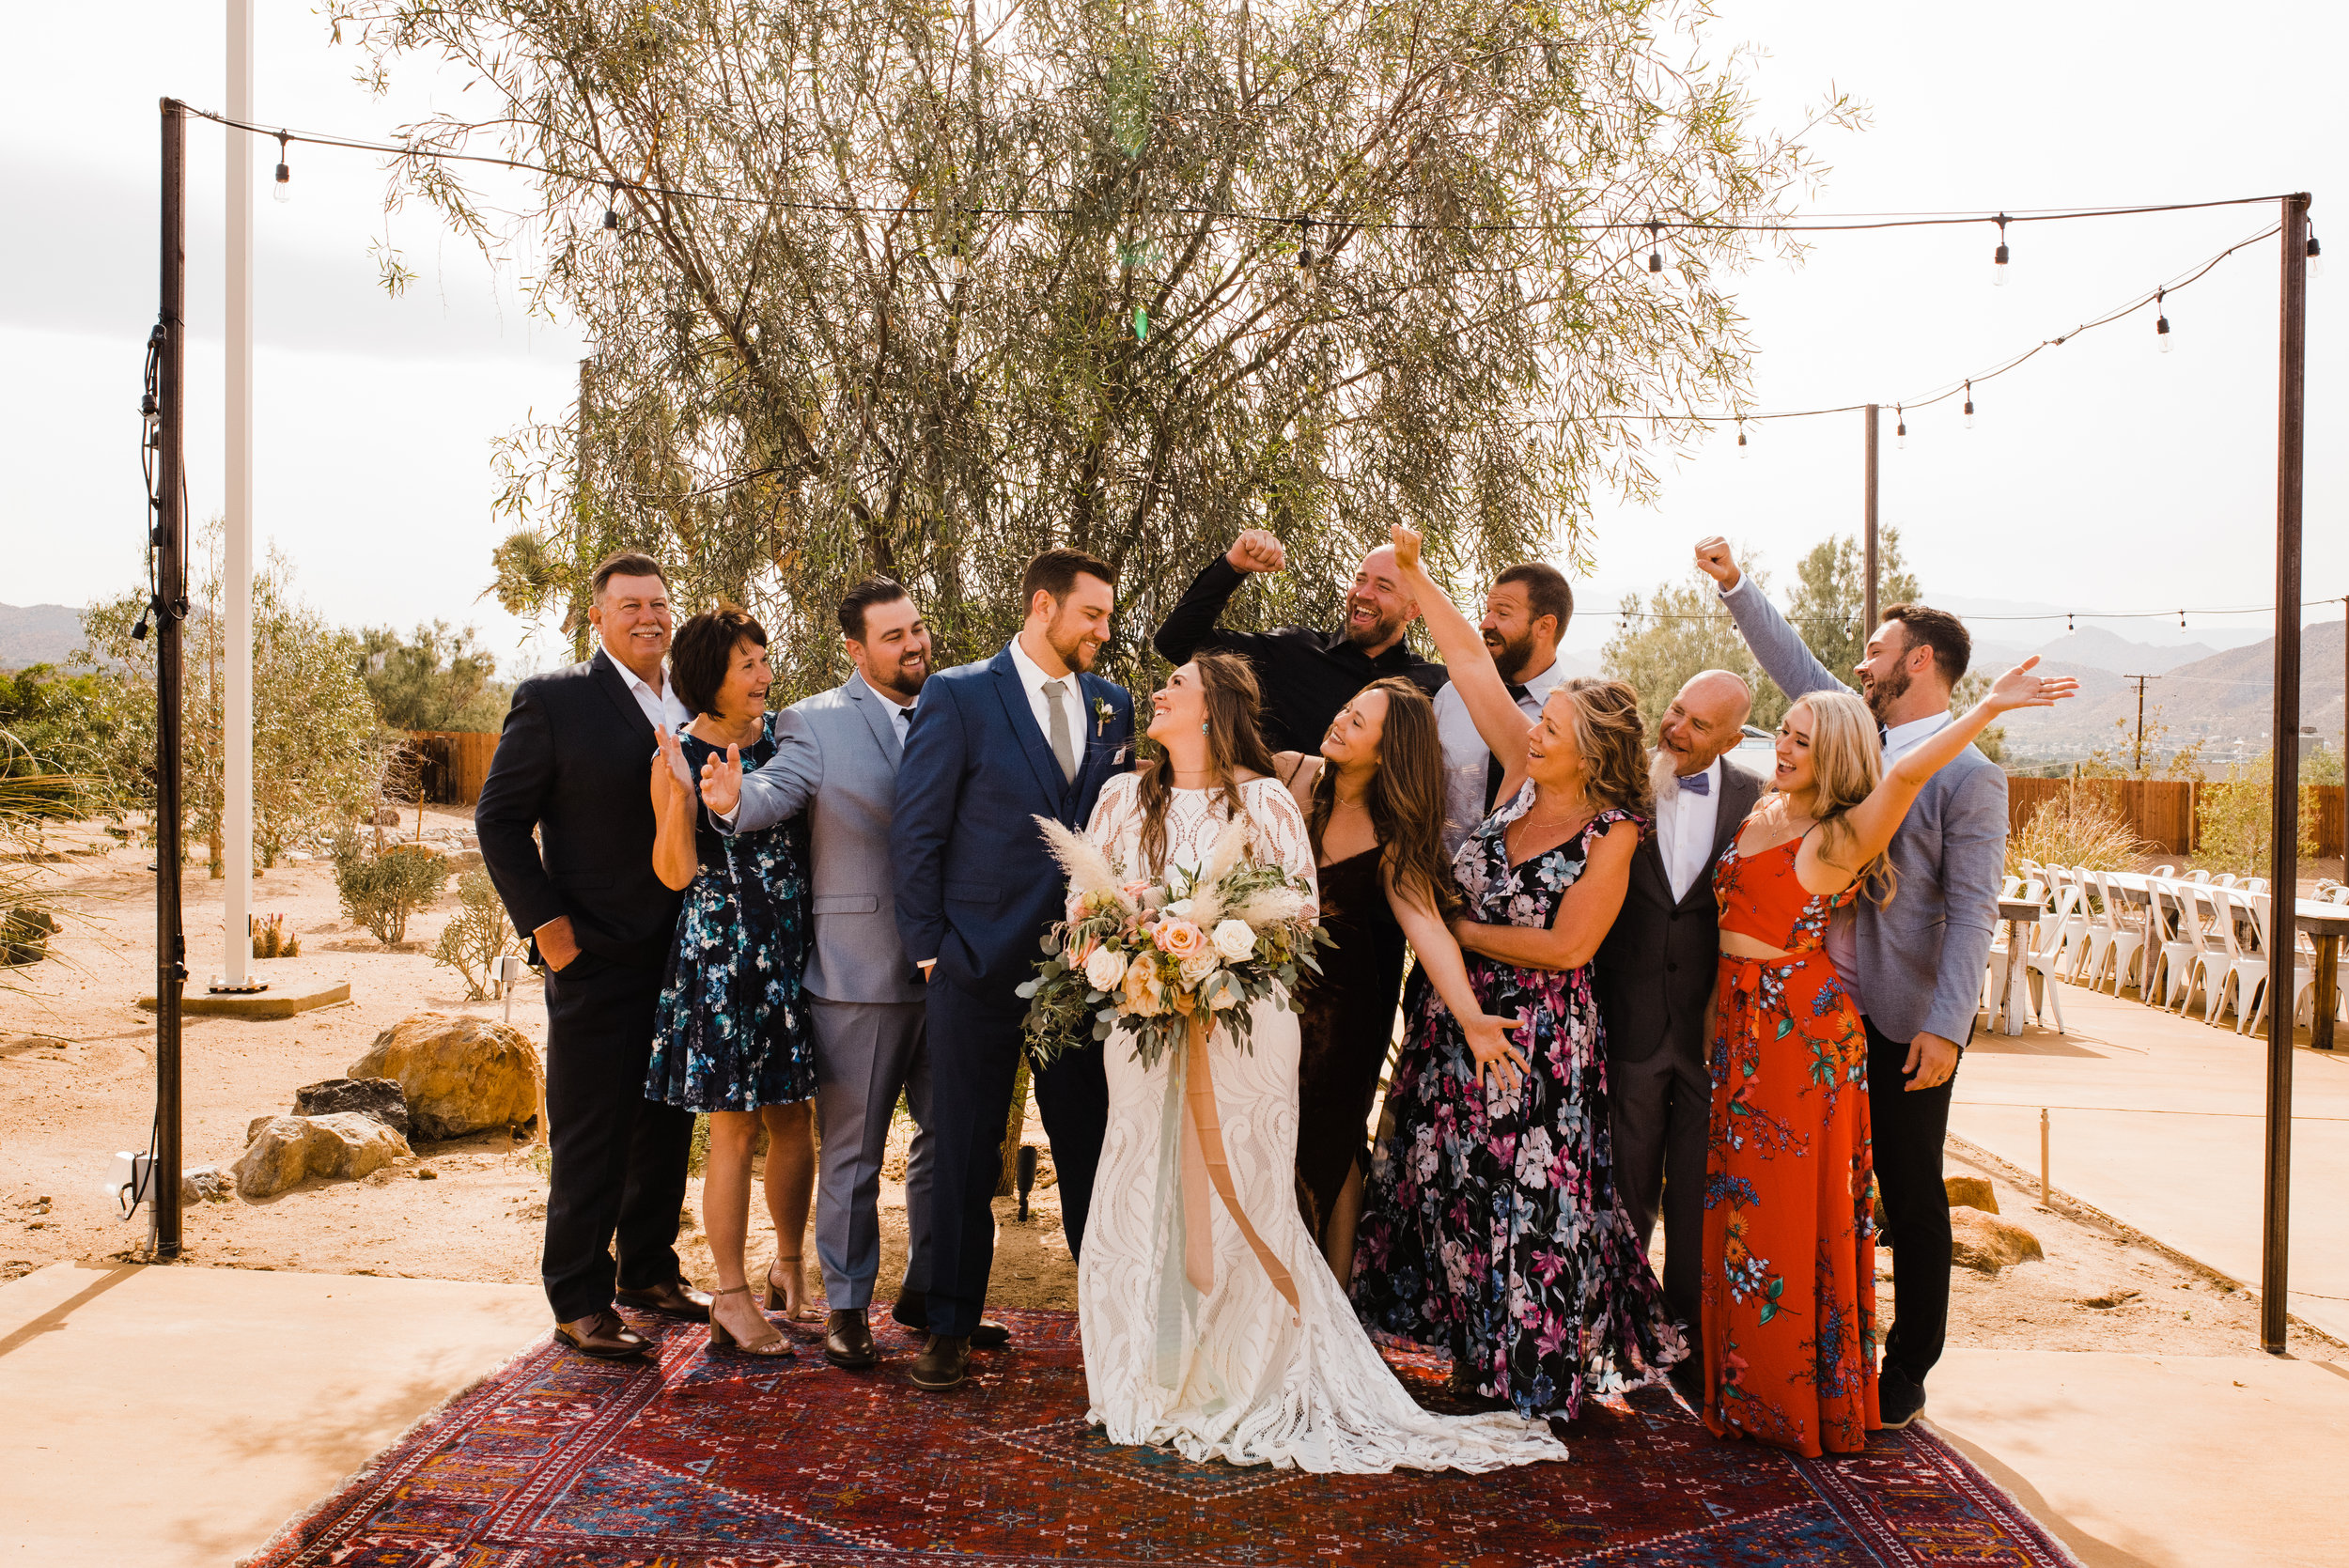 Family Cheers in Group Photo at Tumbleweed Sanctuary and Garden in Yucca Valley, California.